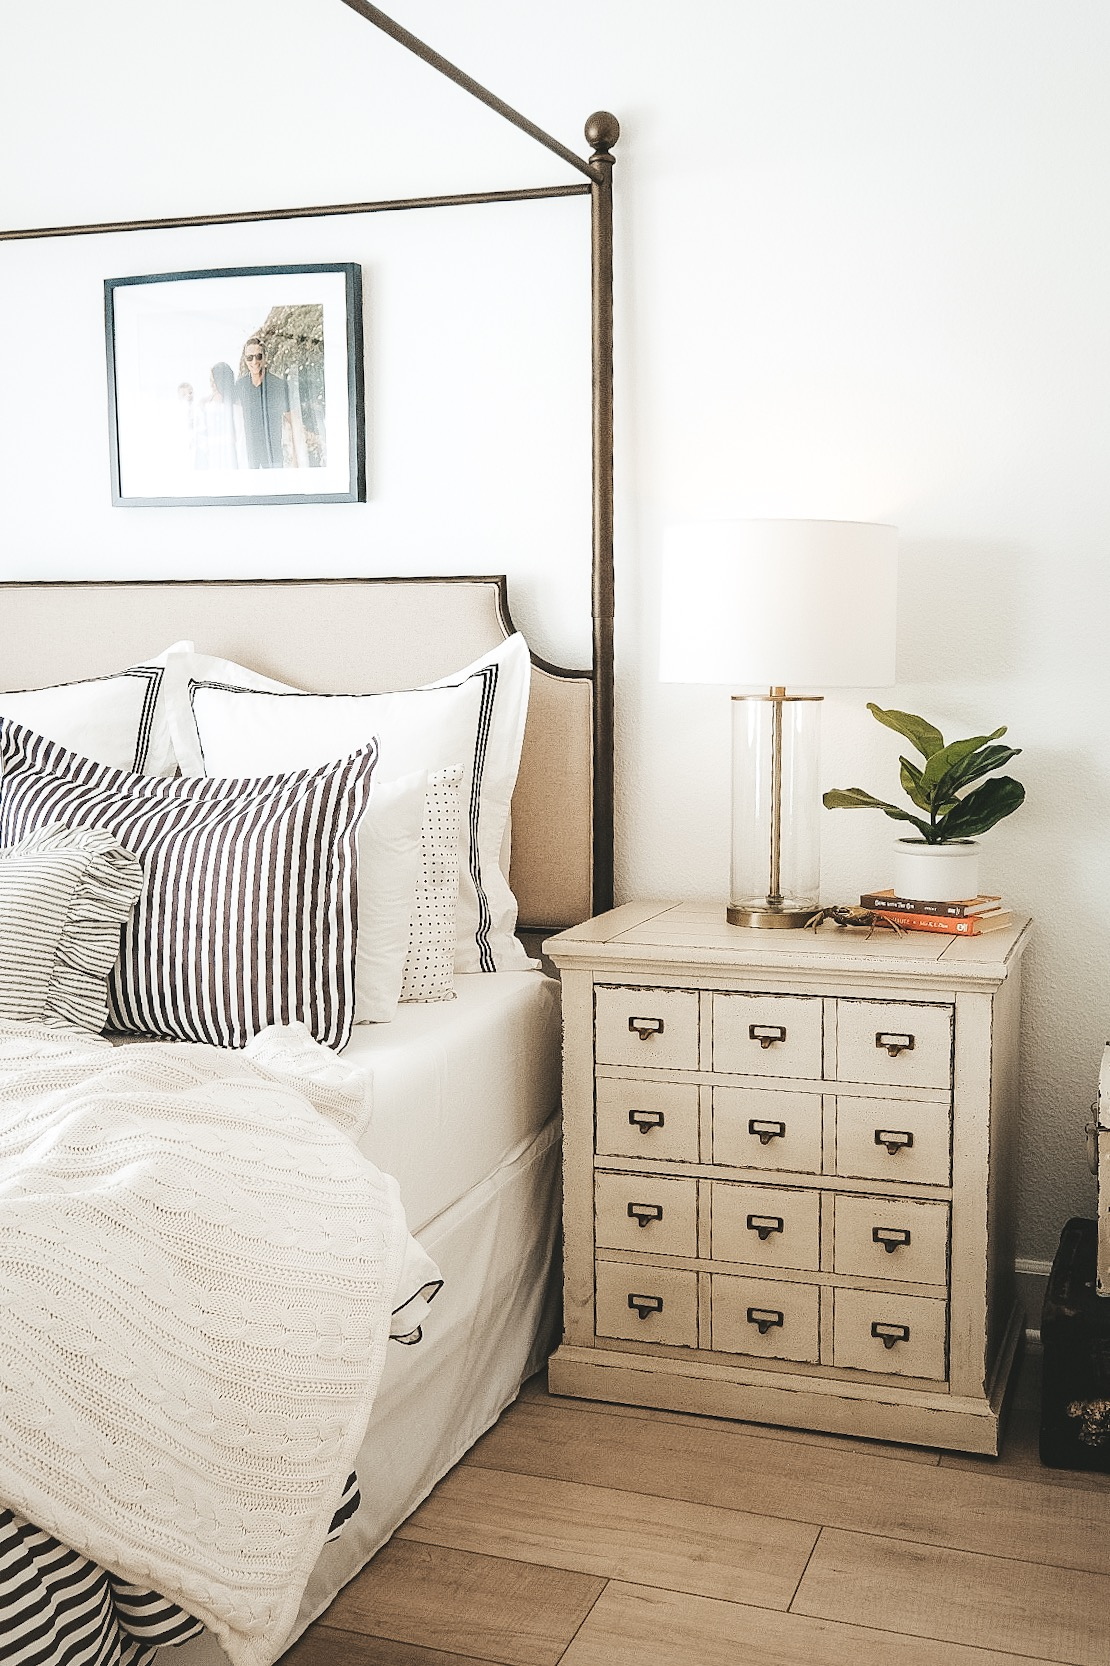 How To Mix Modern And Traditional Pieces In Your Bedroom Me And Mr Jones